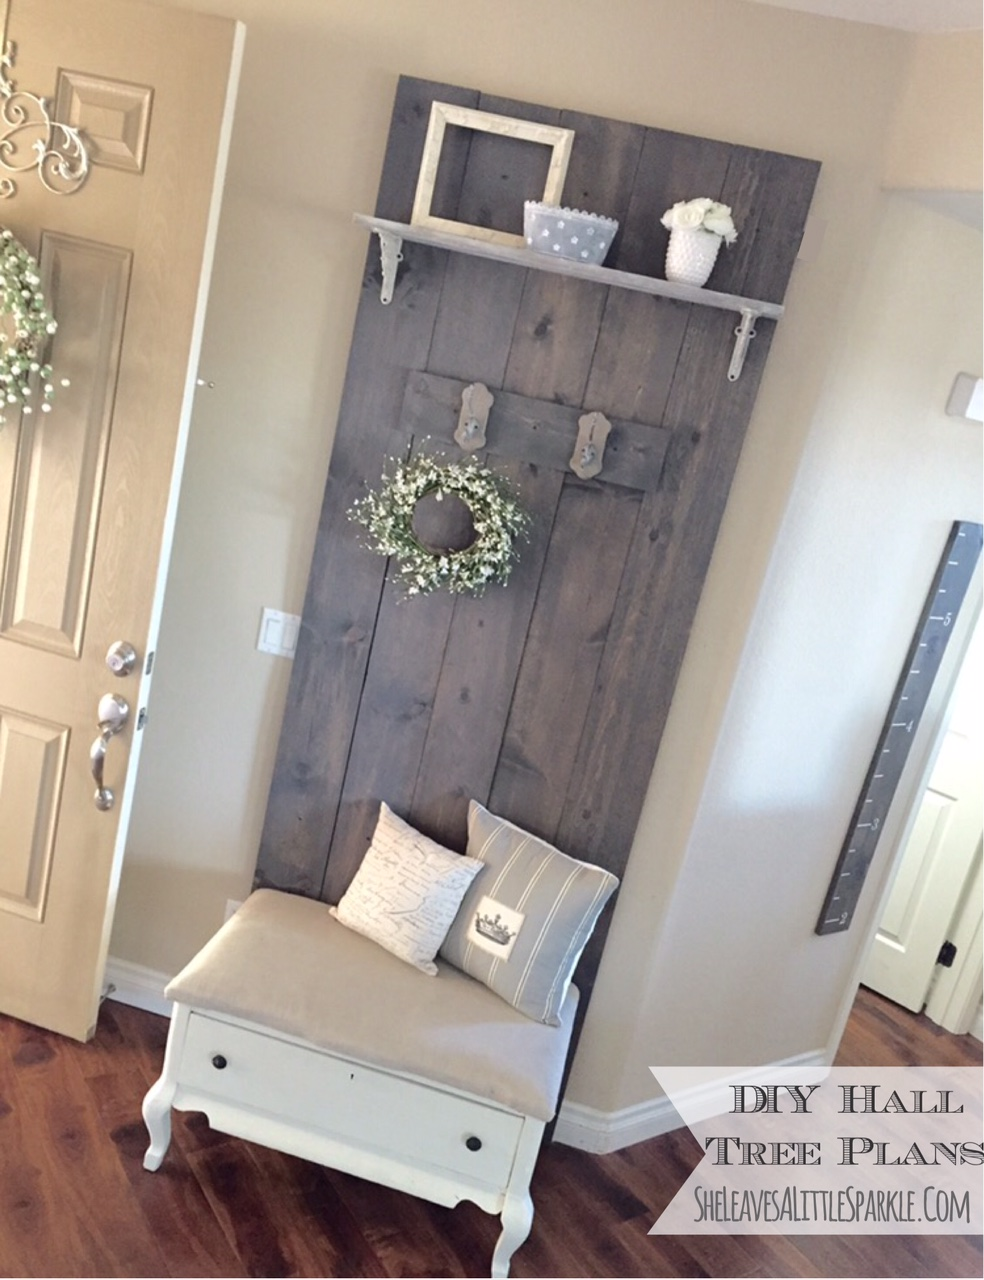 Easy diy hall tree plans sheleavesalittlesparkle for Easy entry cart plans